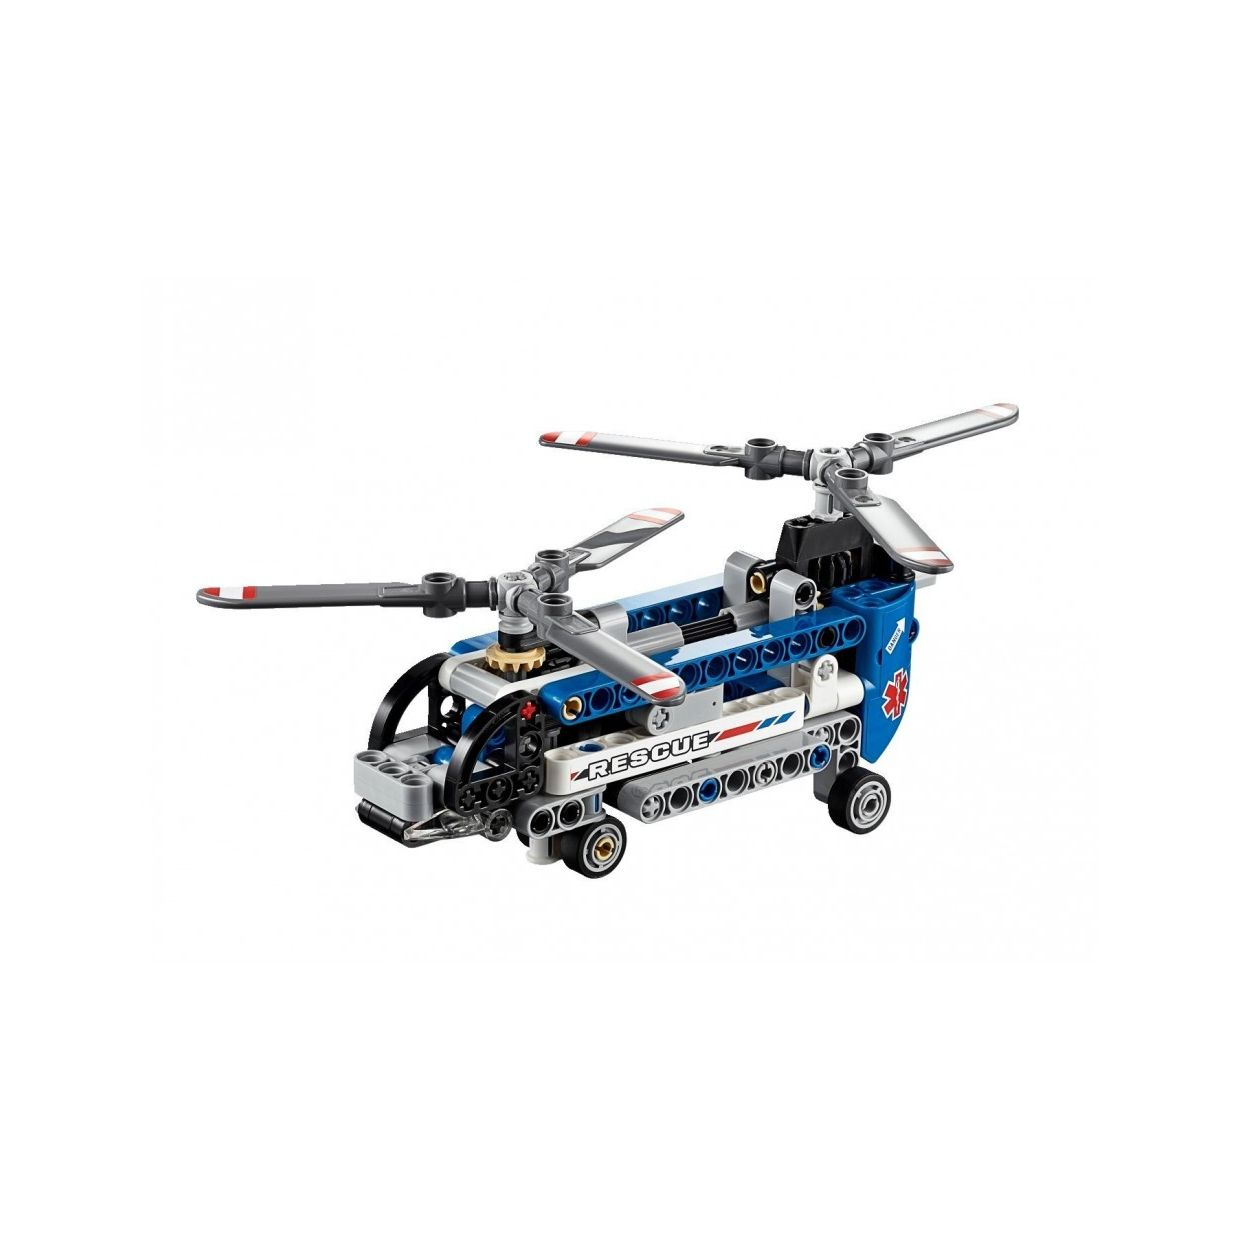 42020 lego technic twin rotor helicopter. Black Bedroom Furniture Sets. Home Design Ideas